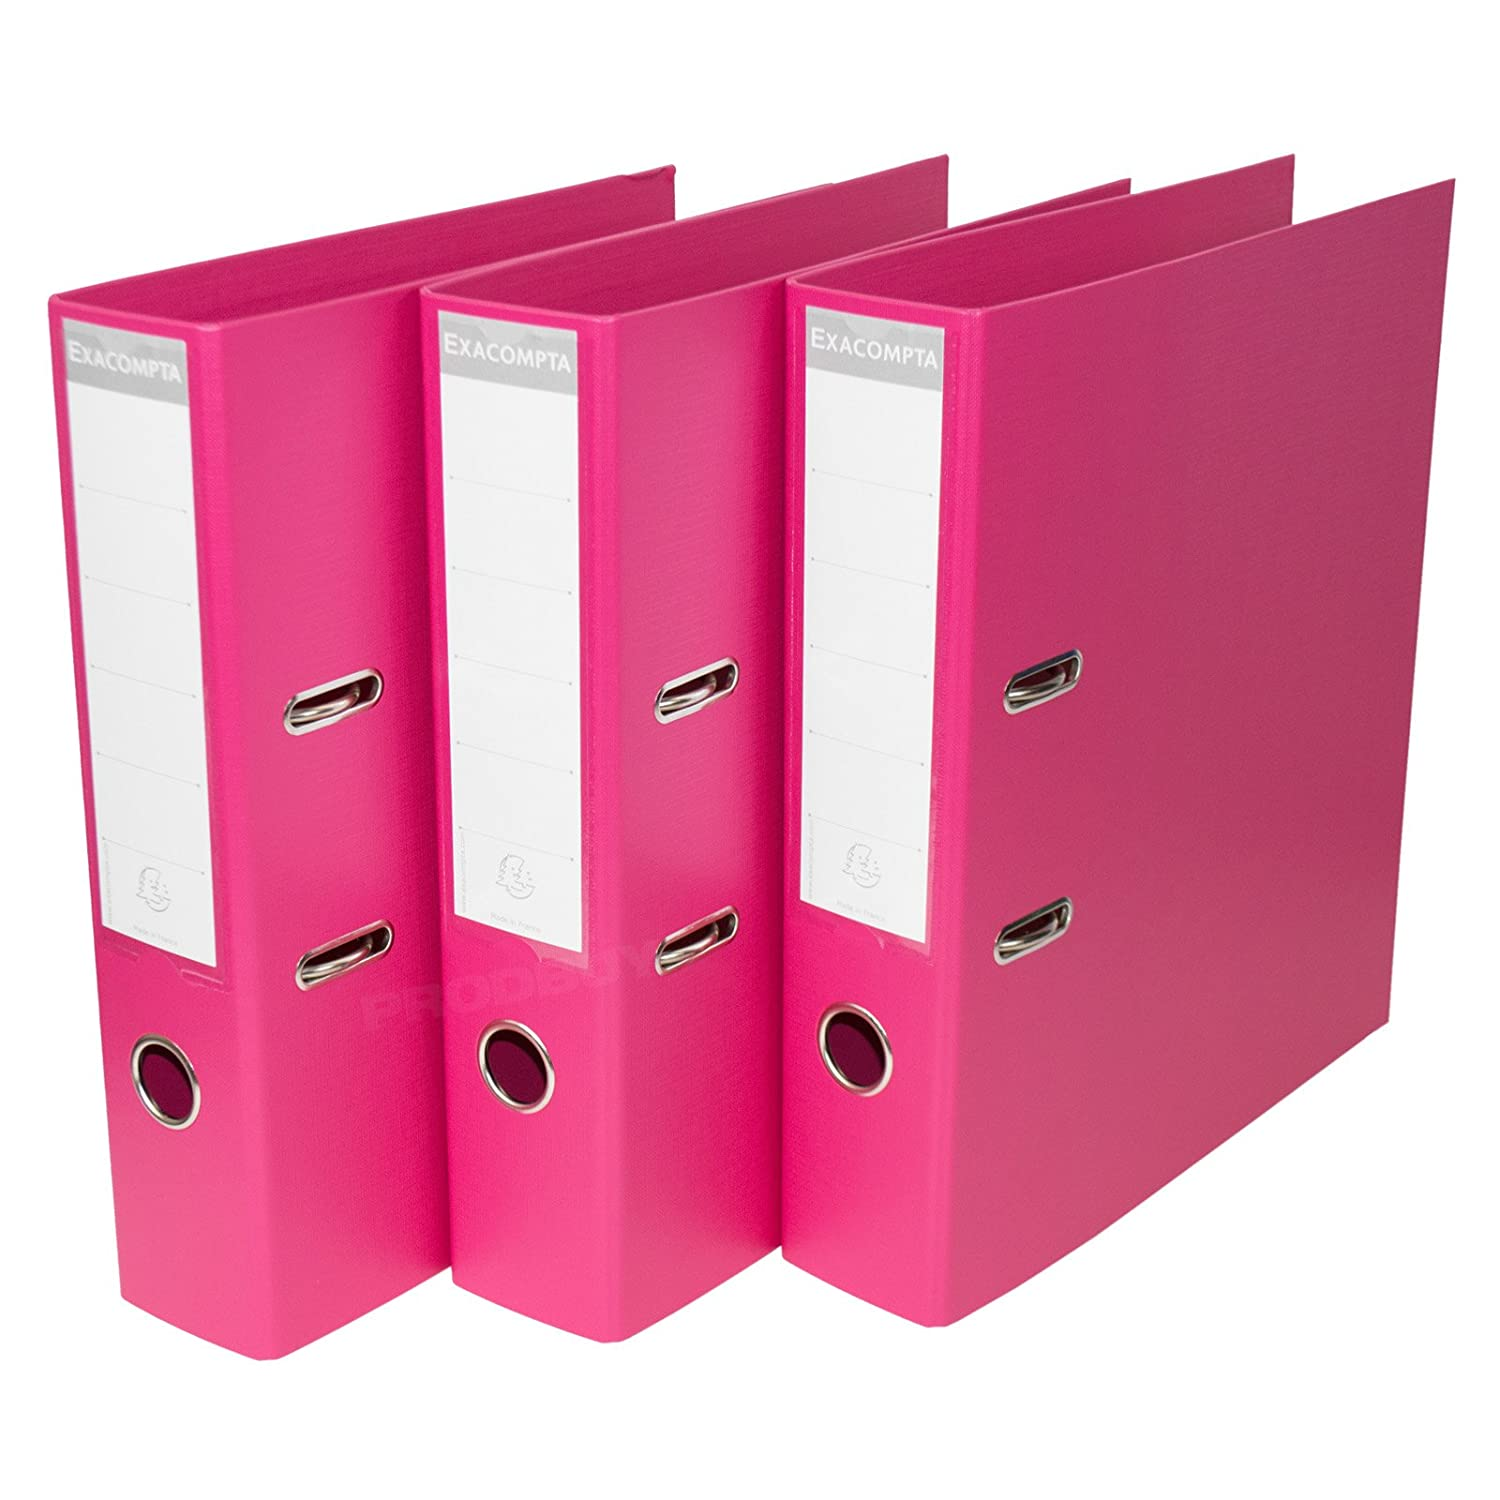 [Pack de 3] color rosa A4 Archivadores De Palanca 70 mm almacenamiento de papel archivo Documento Legal carpetas: Amazon.es: Oficina y papelería